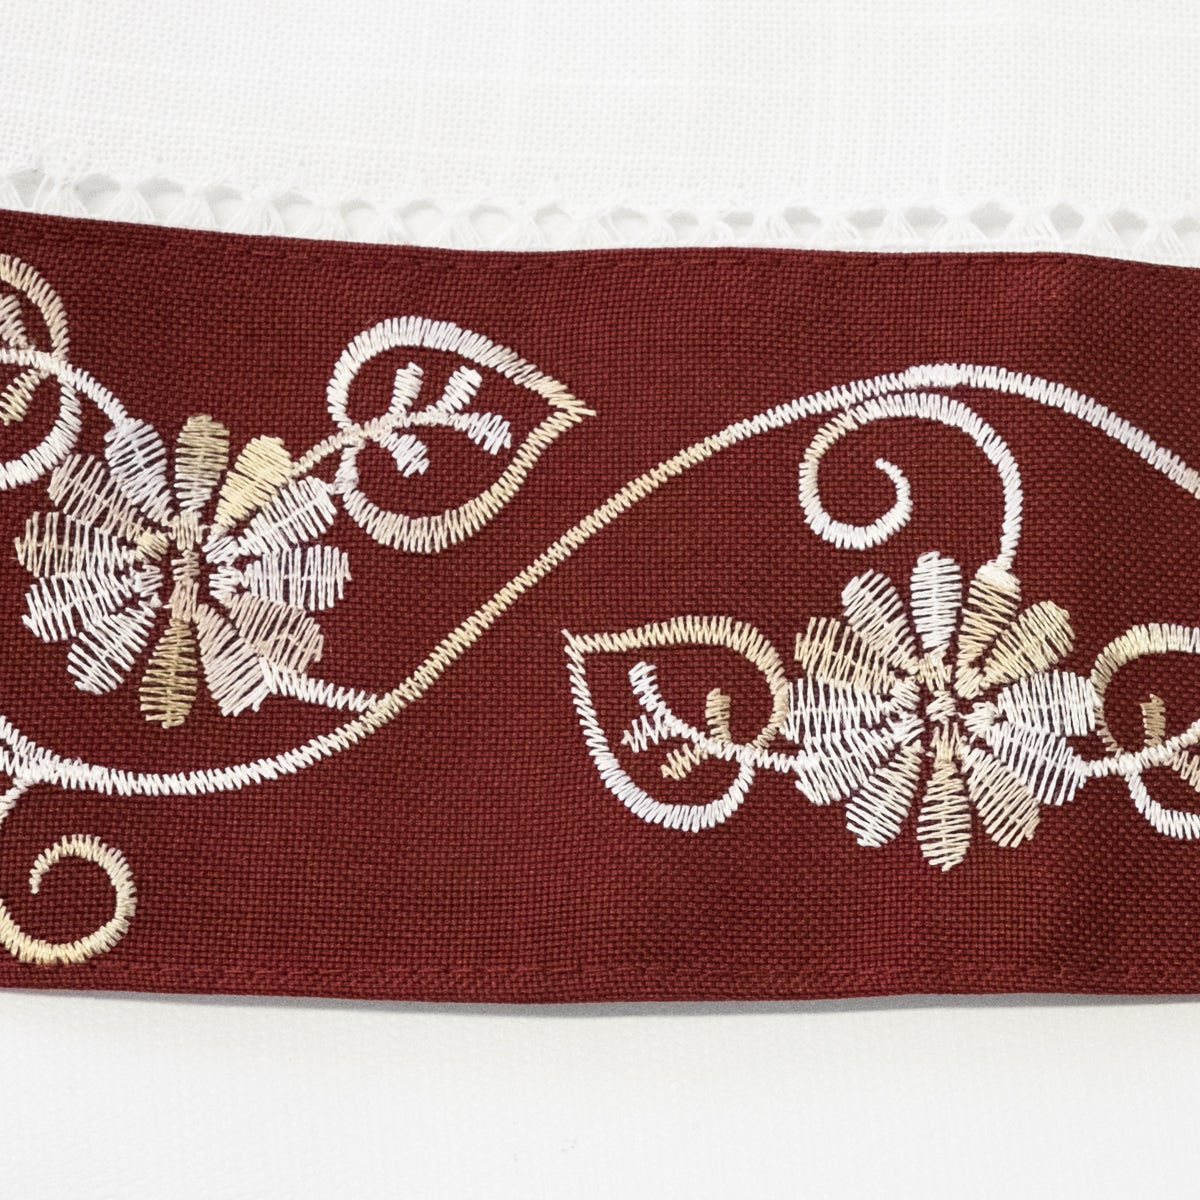 Oakwood Linen Style Decorative Window Curtain Tier Set Pertaining To Oakwood Linen Style Decorative Curtain Tier Sets (View 6 of 20)